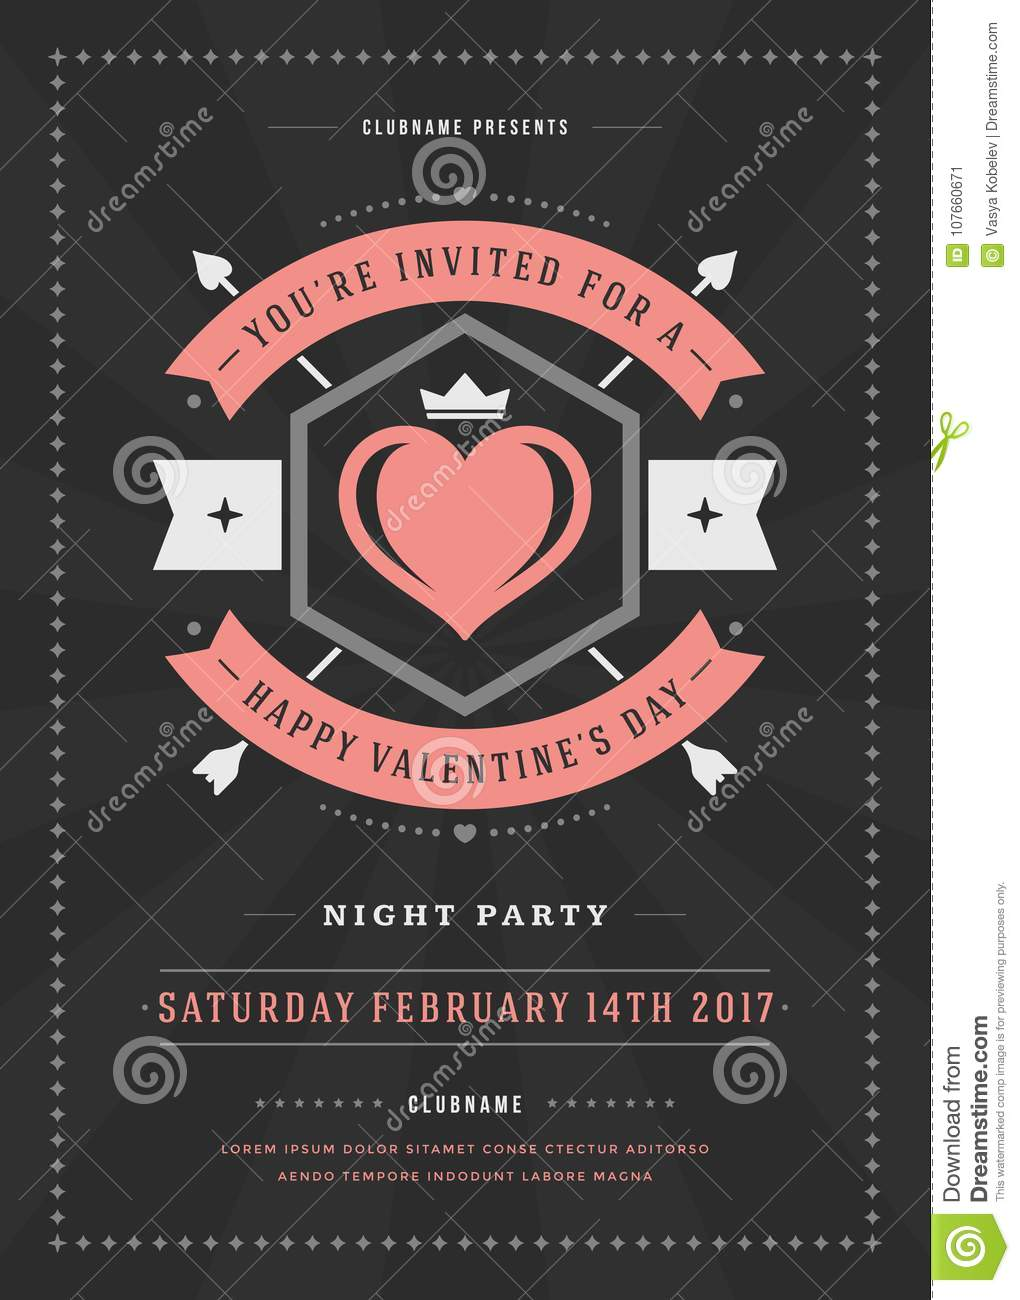 Happy valentines day party invitation or poster vector illustration download comp stopboris Image collections